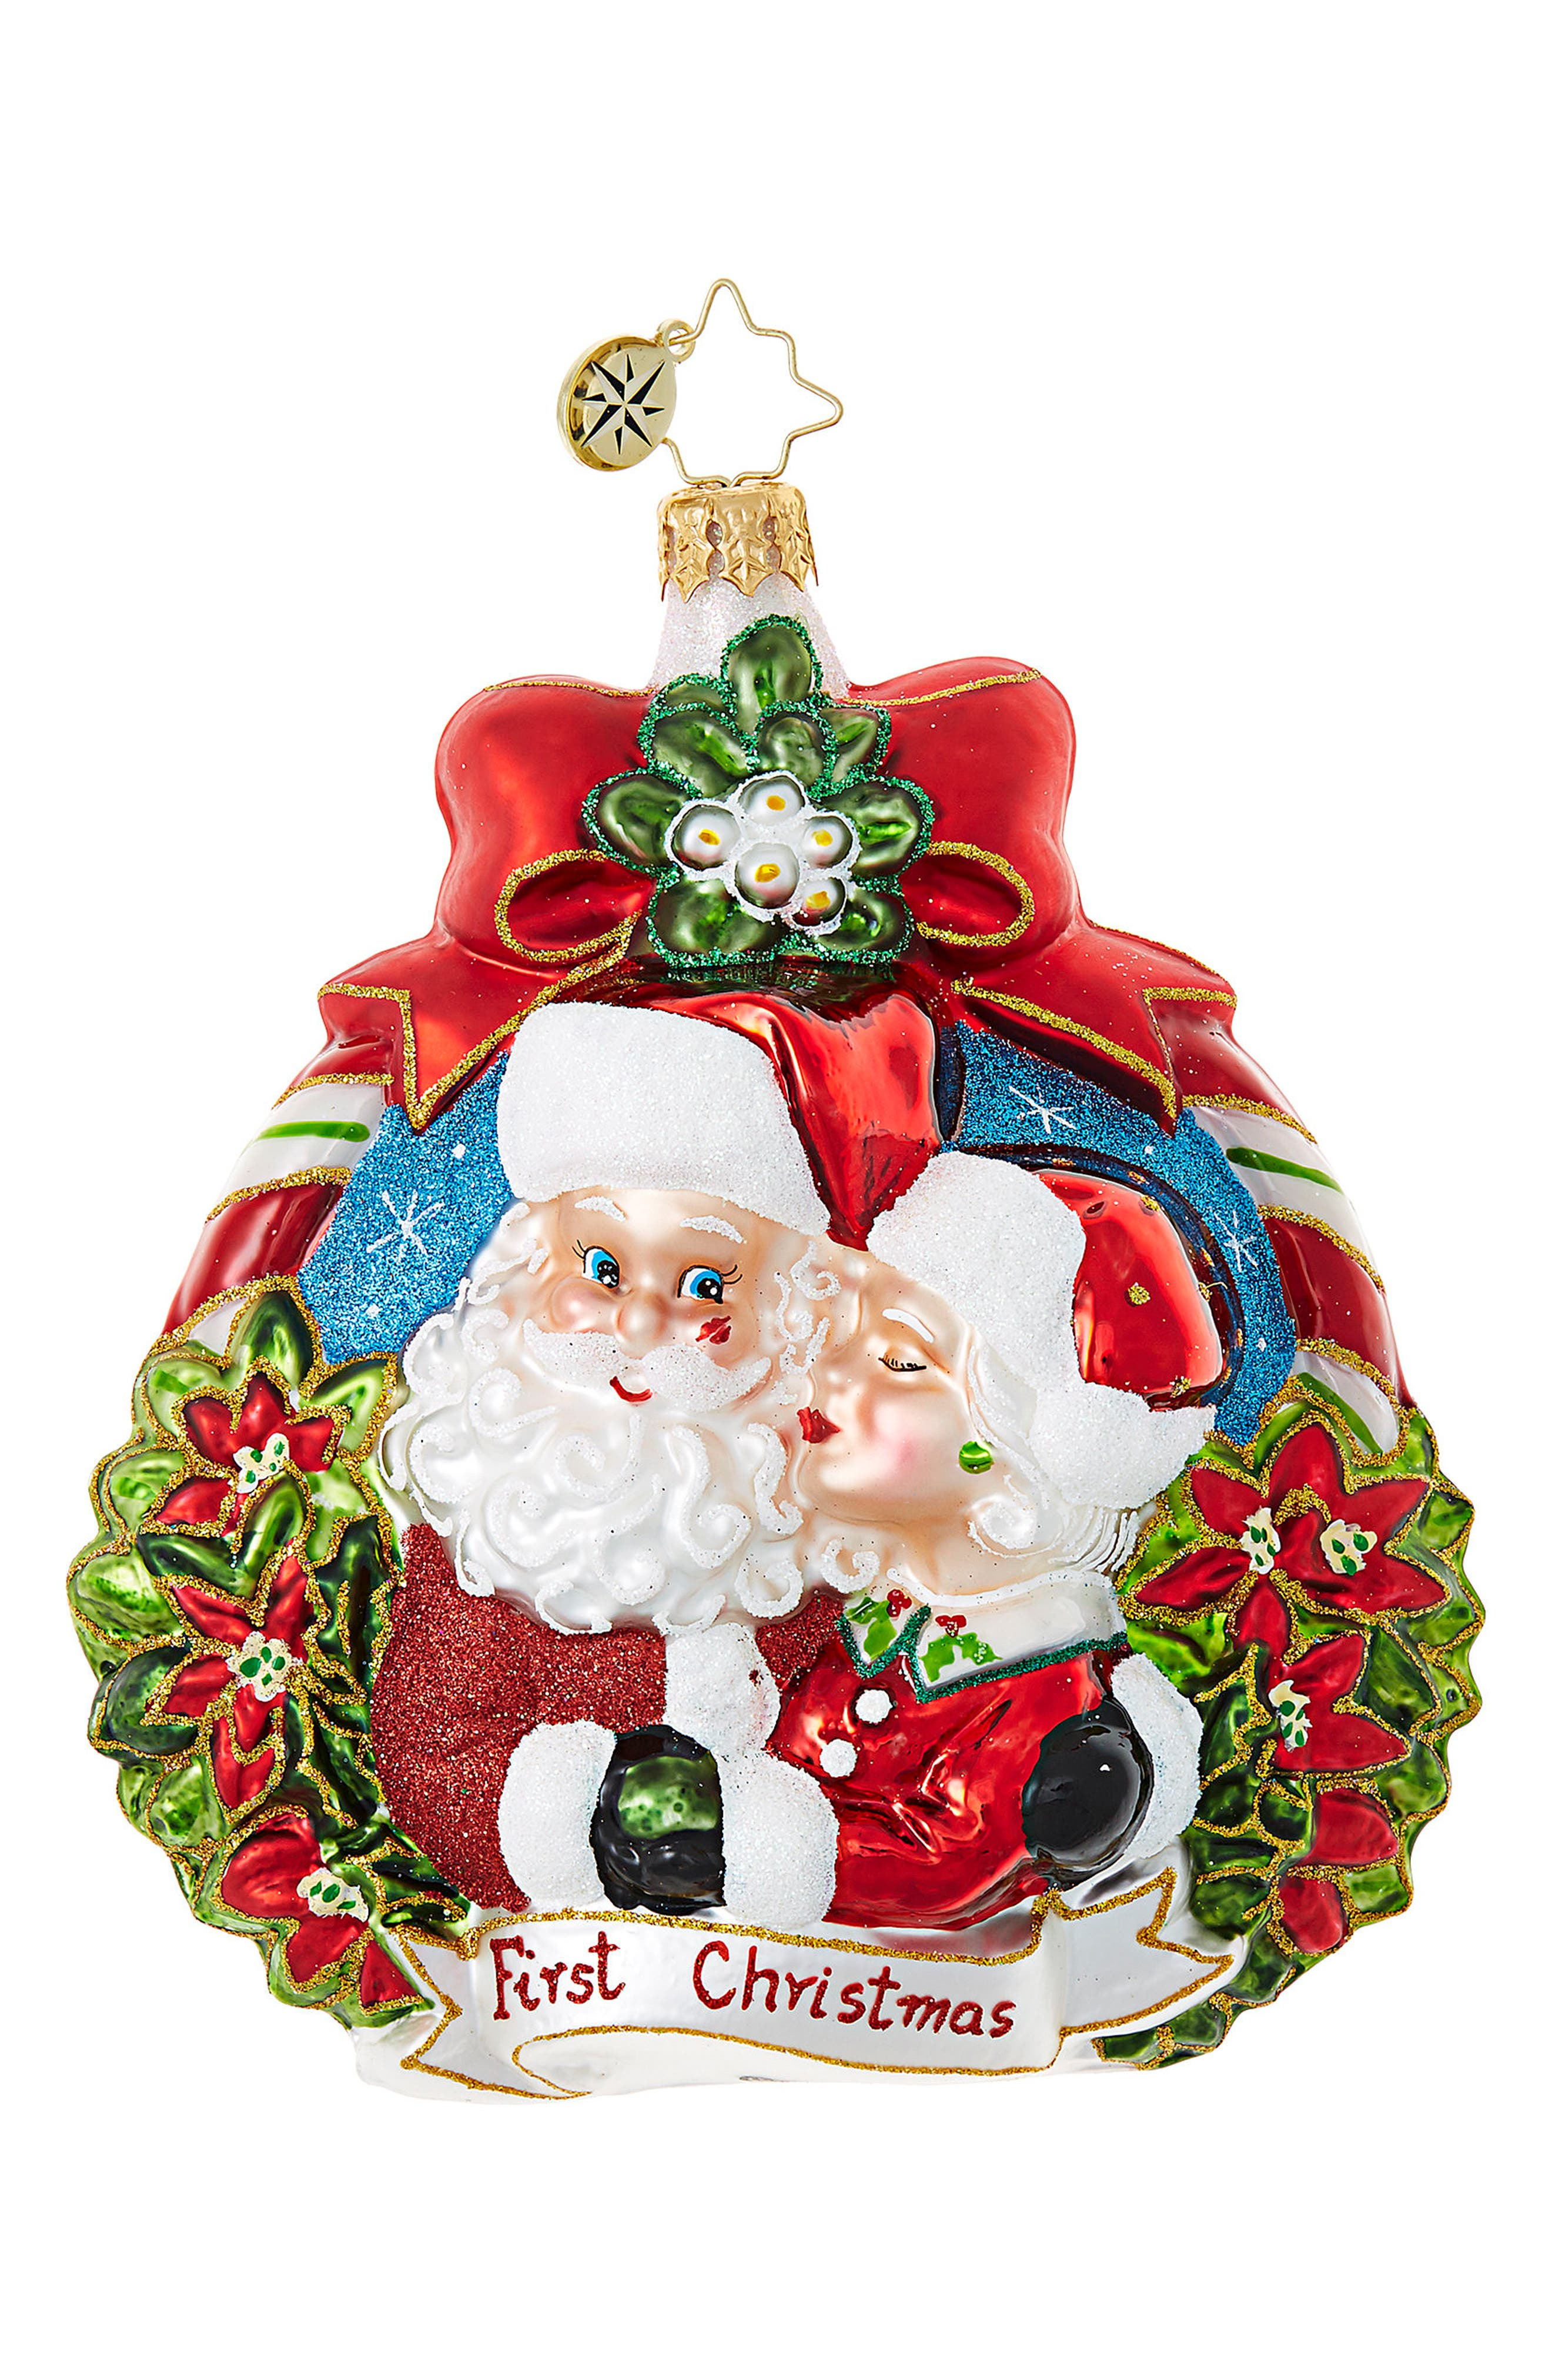 Christopher Radko First Christmas Glass Ornament